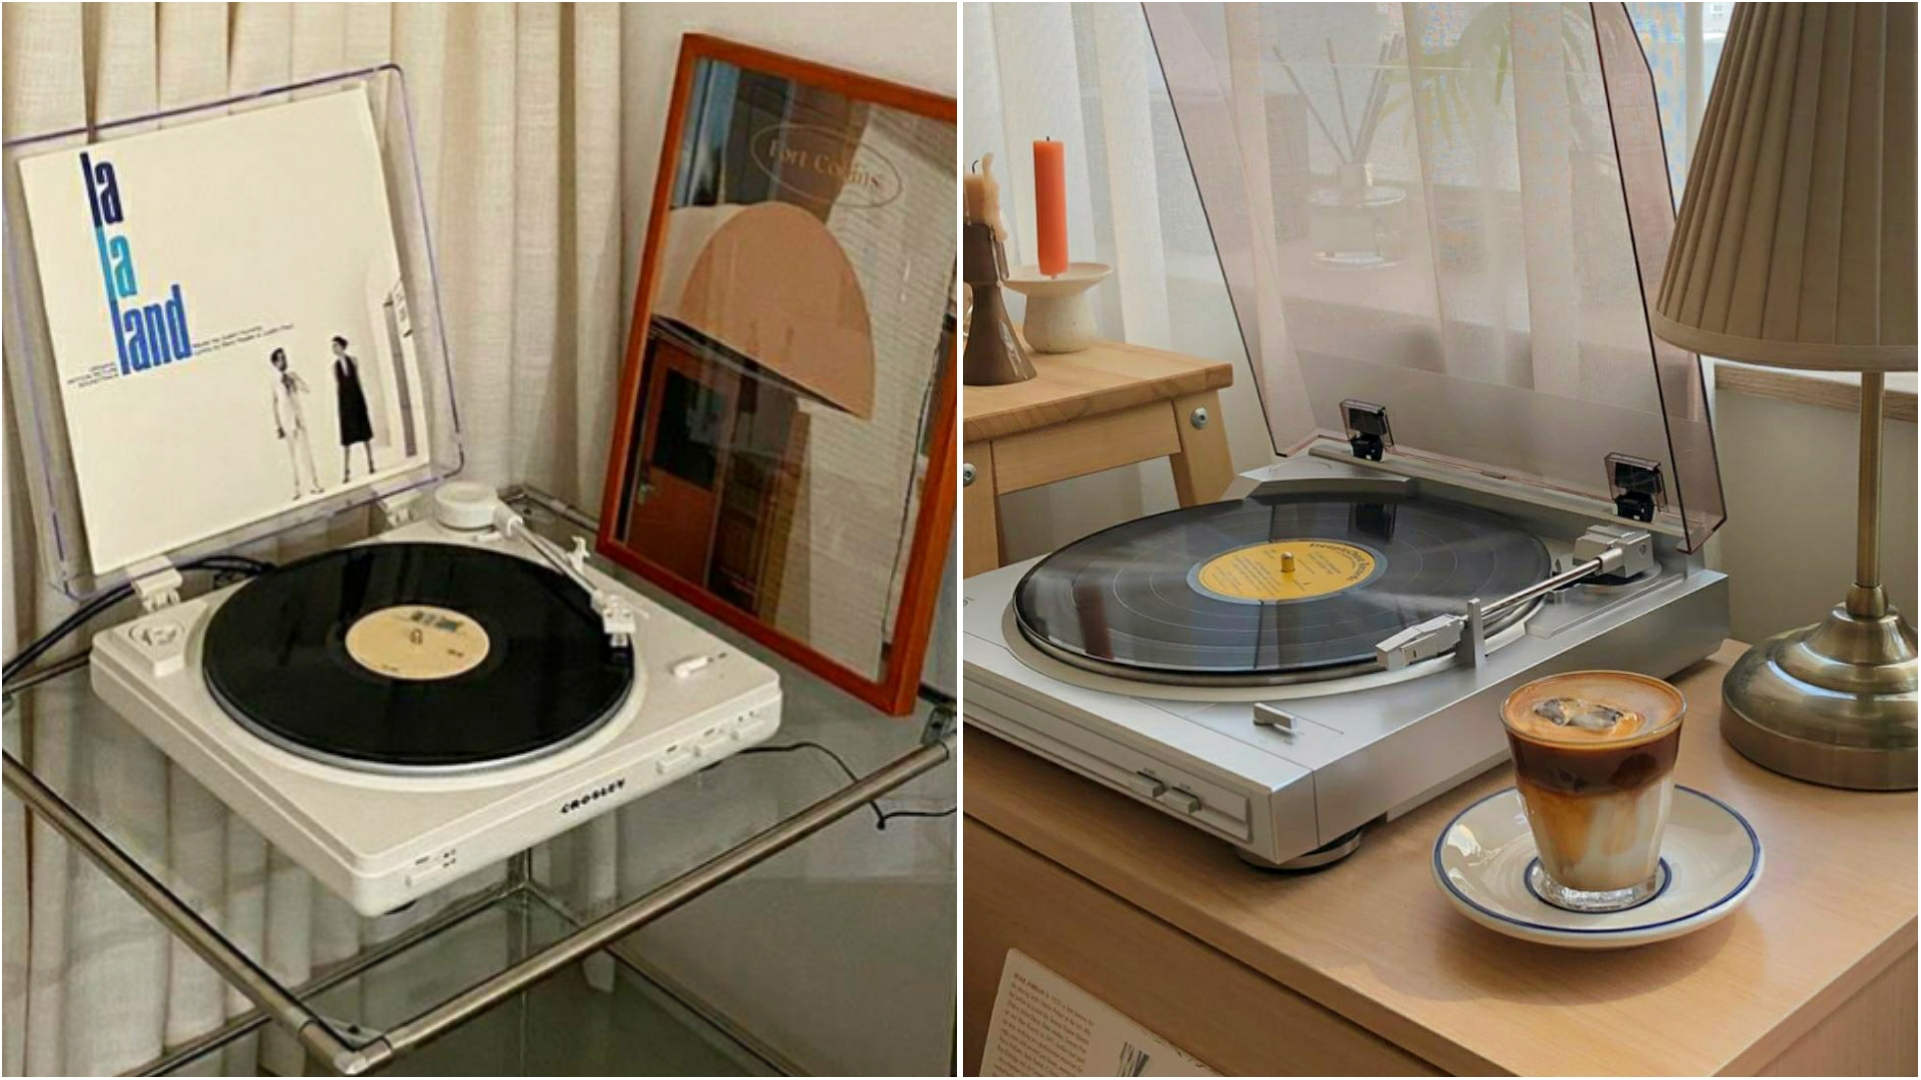 Korean Home Decor 2021 - Retro objects, turntables